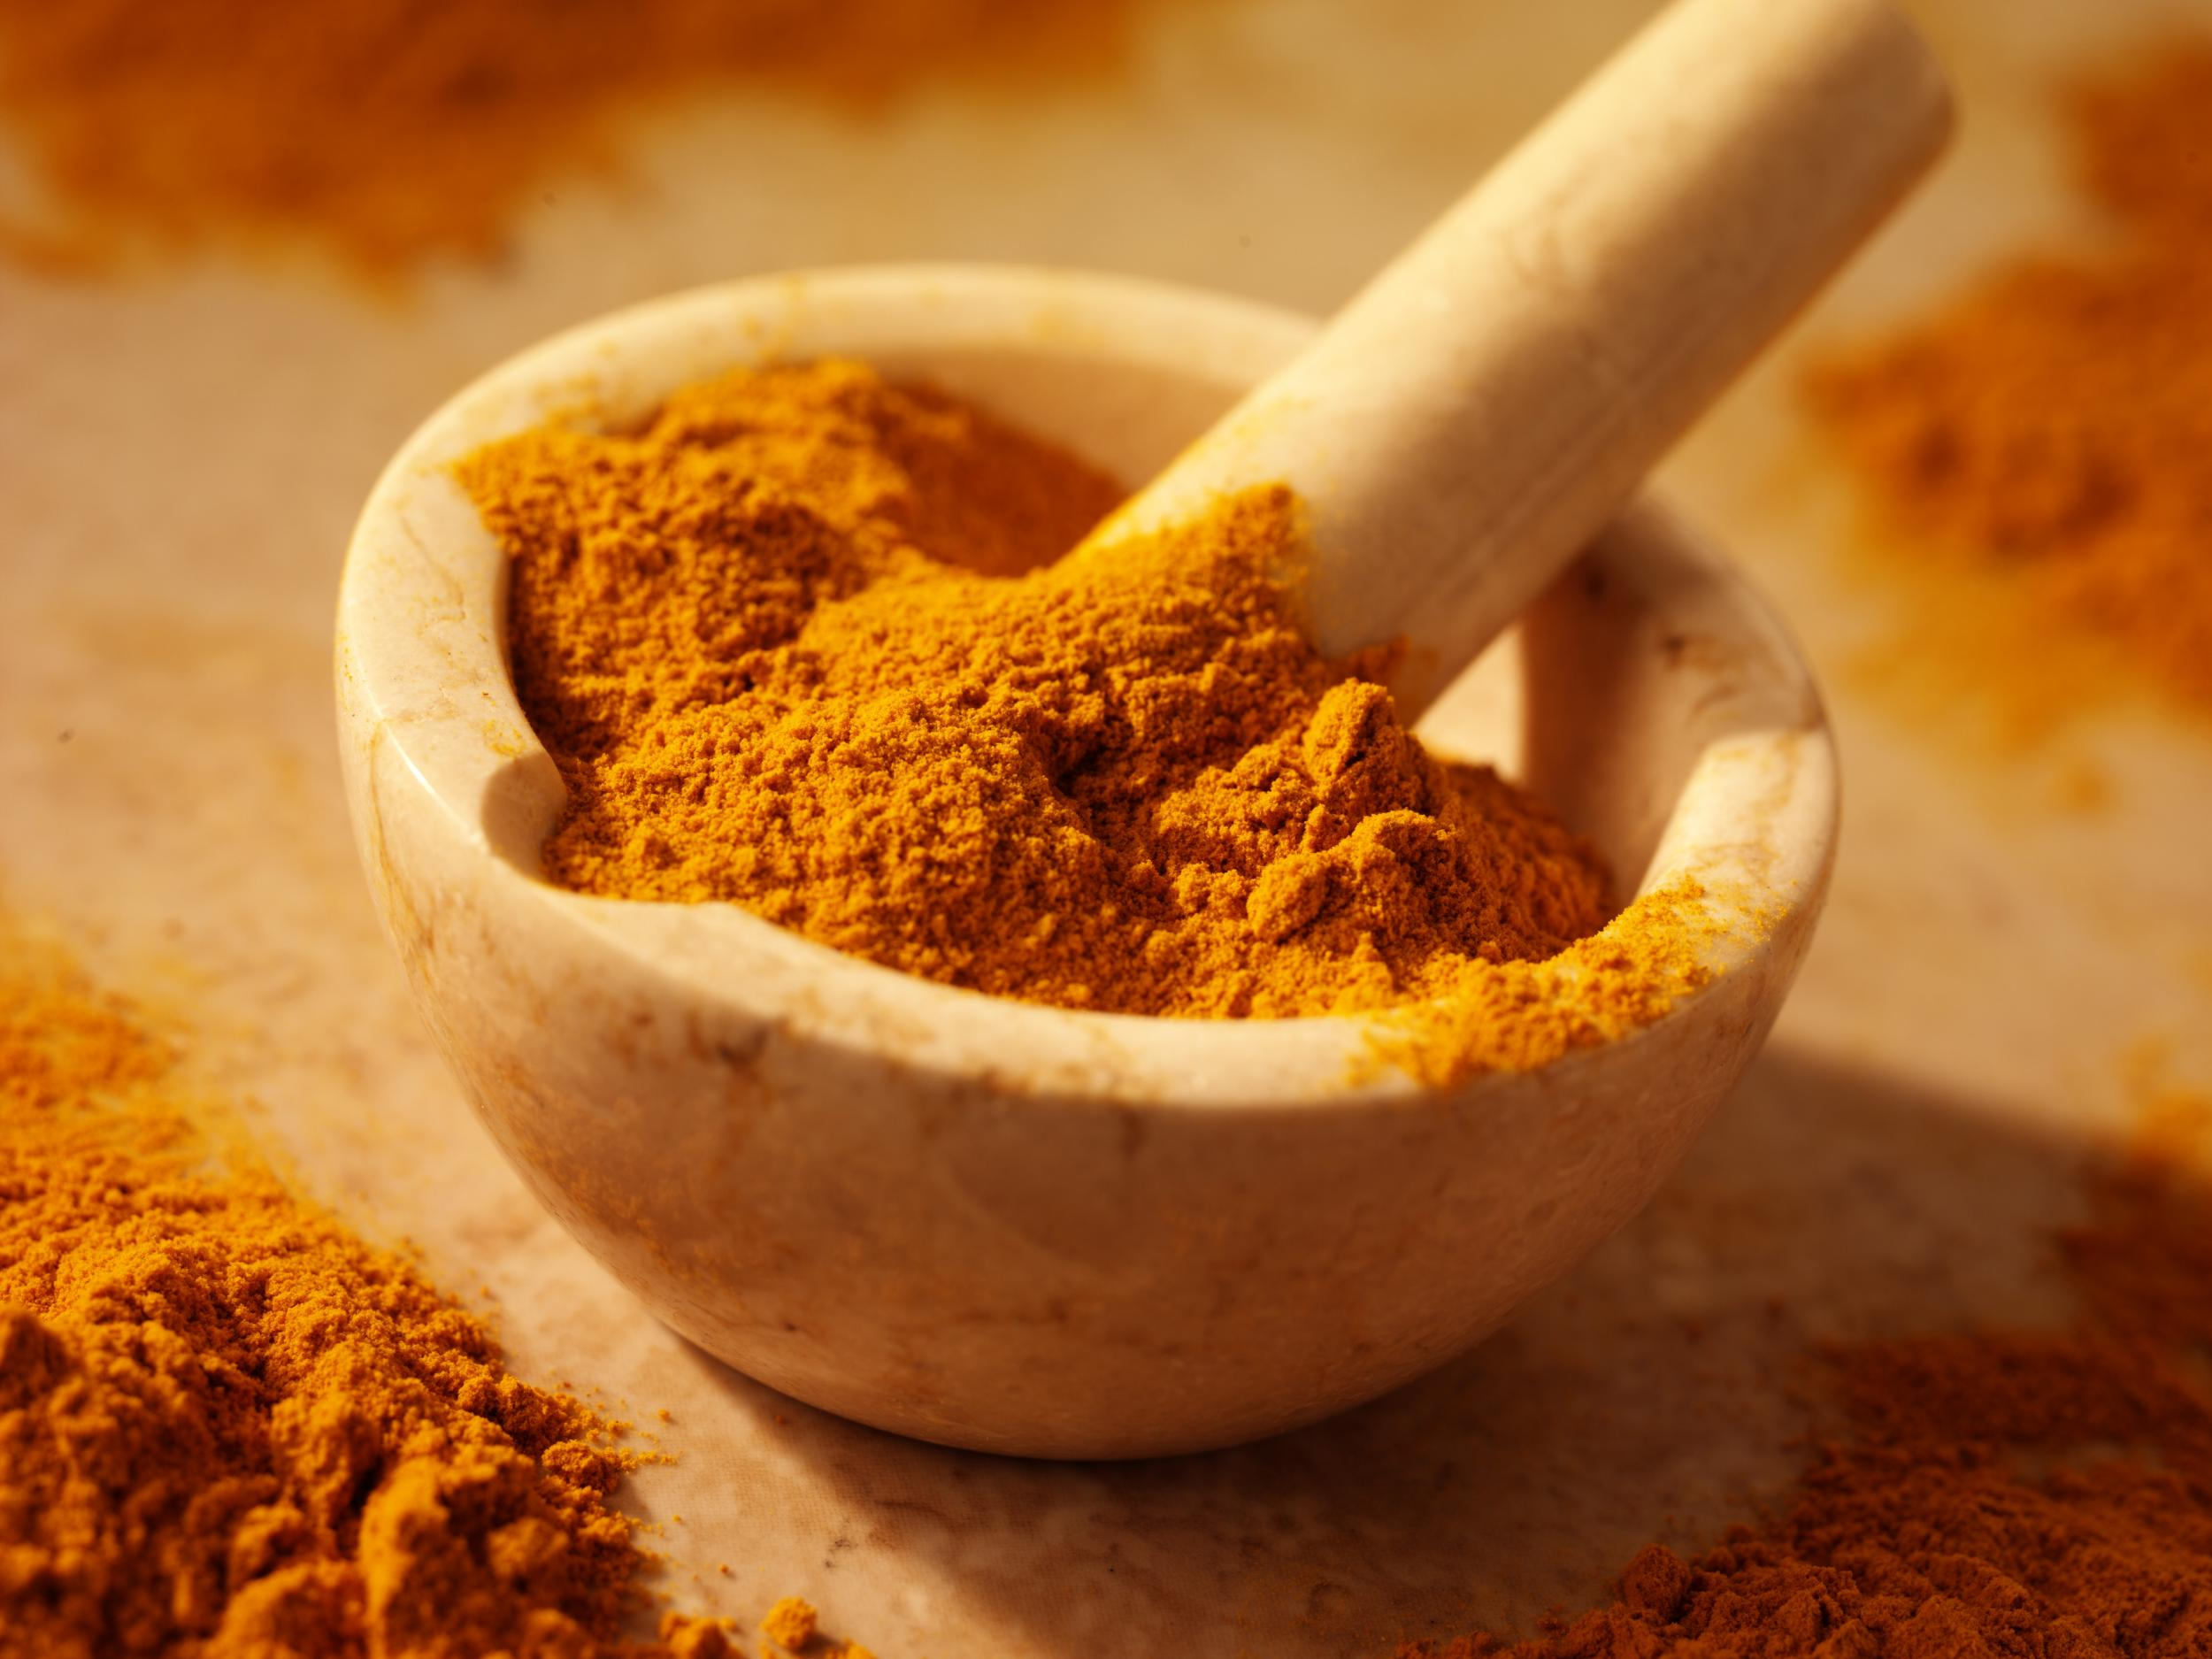 Woman dies after being given turmeric injection as part of naturopath treatment